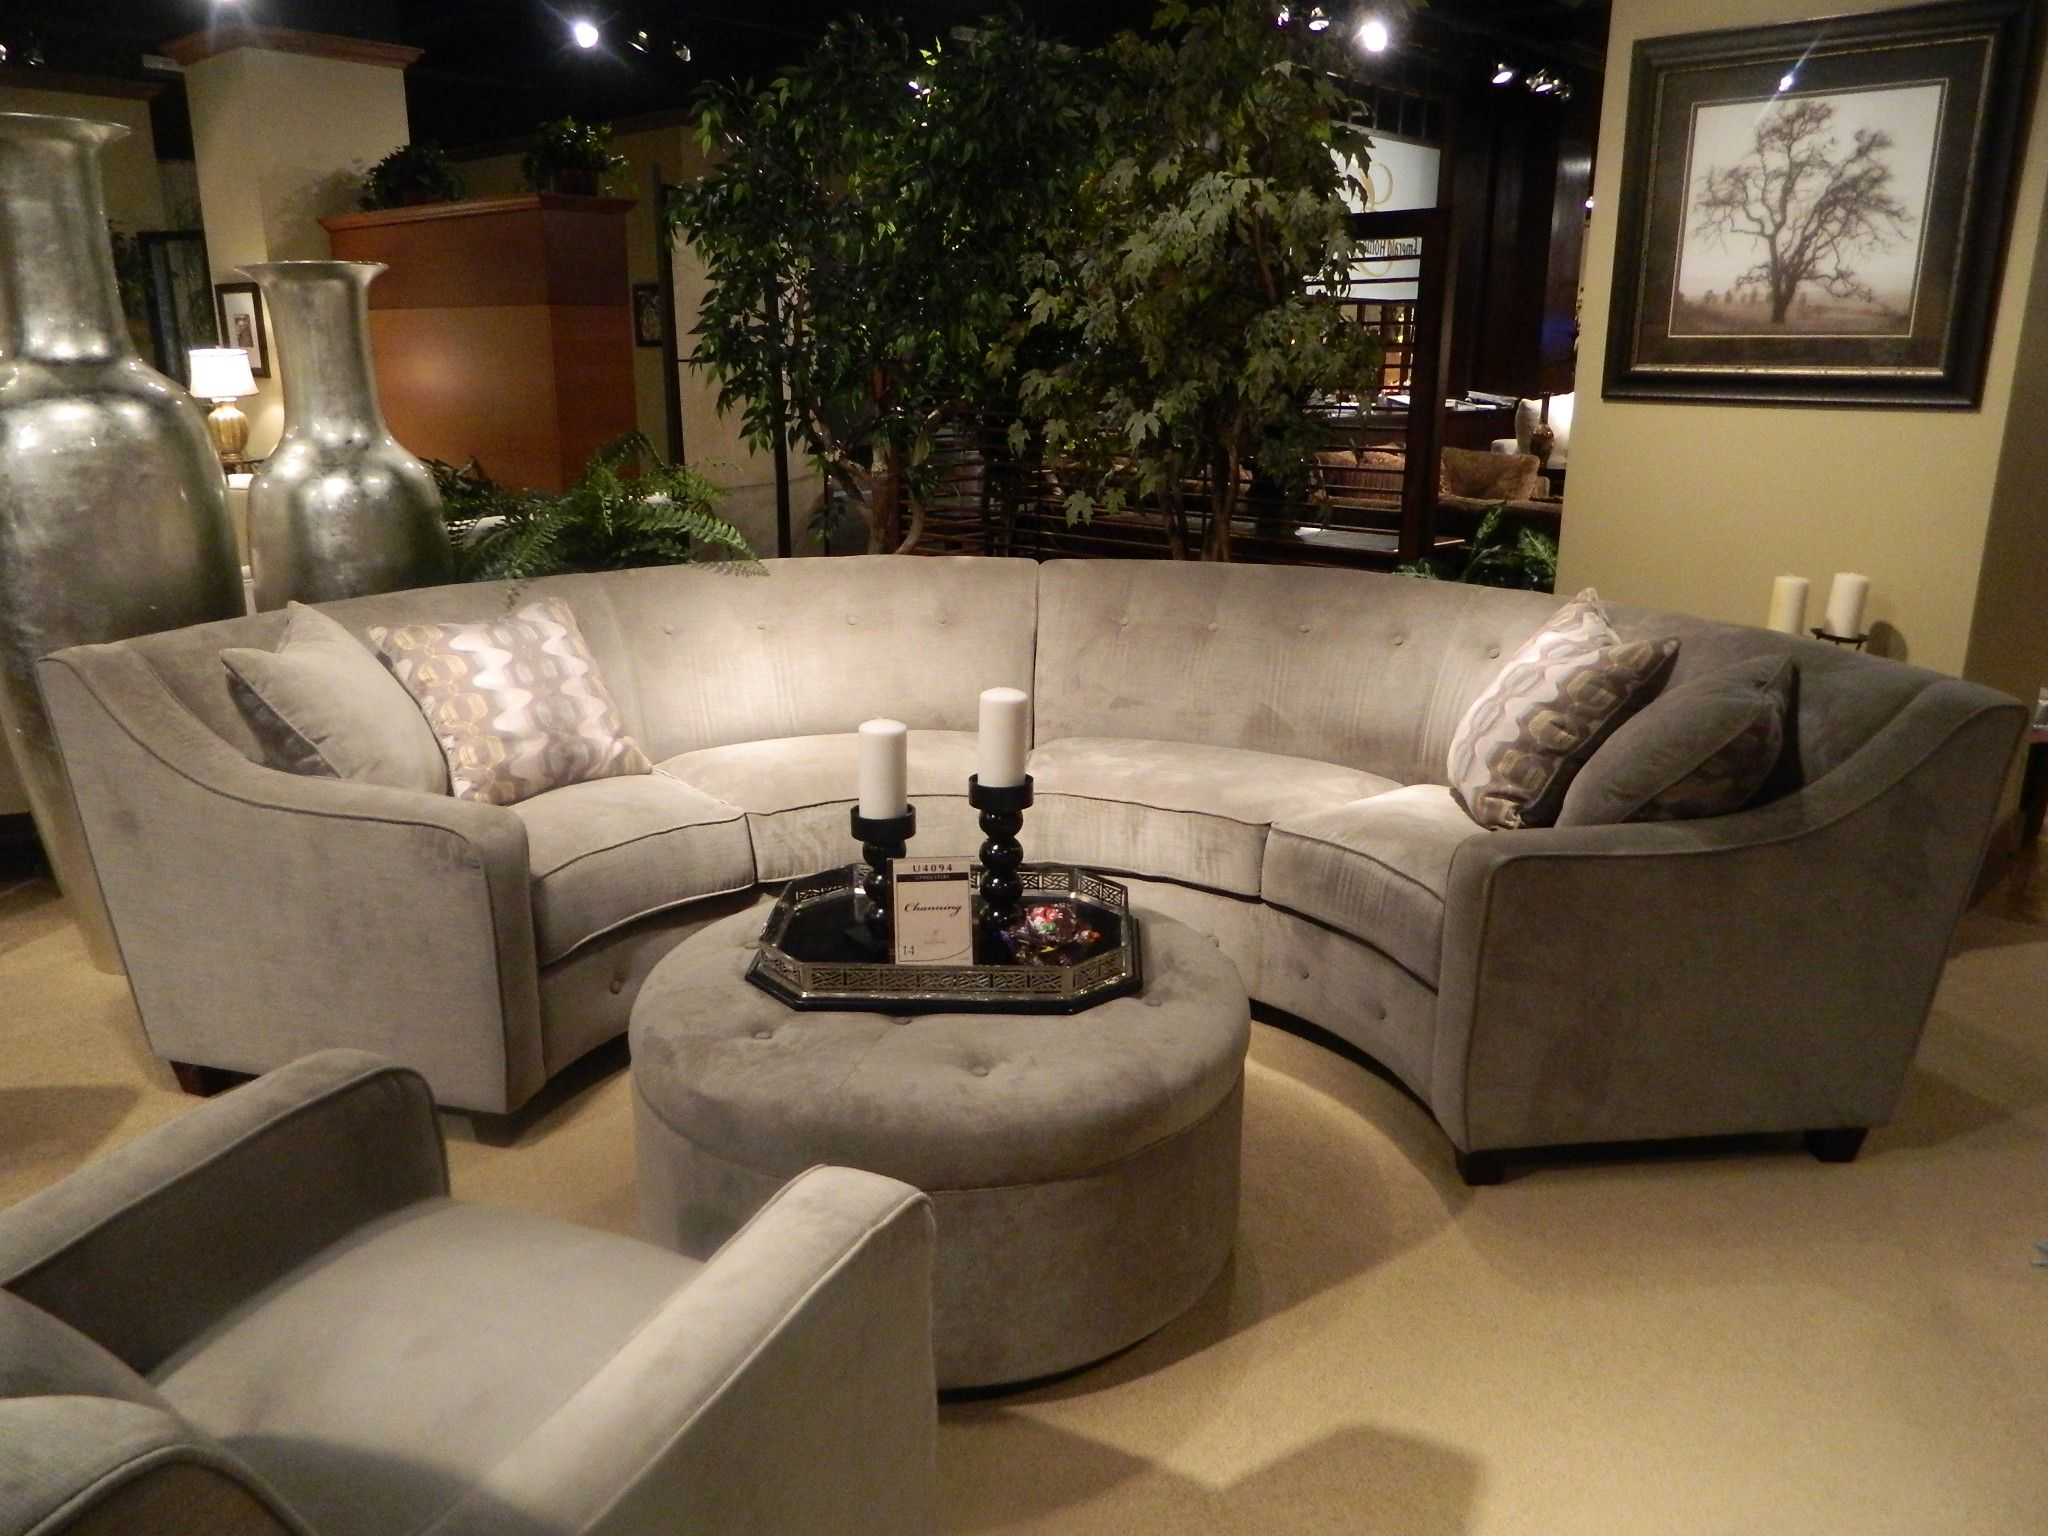 Coming Soon With Images Round Couch Round Sofa